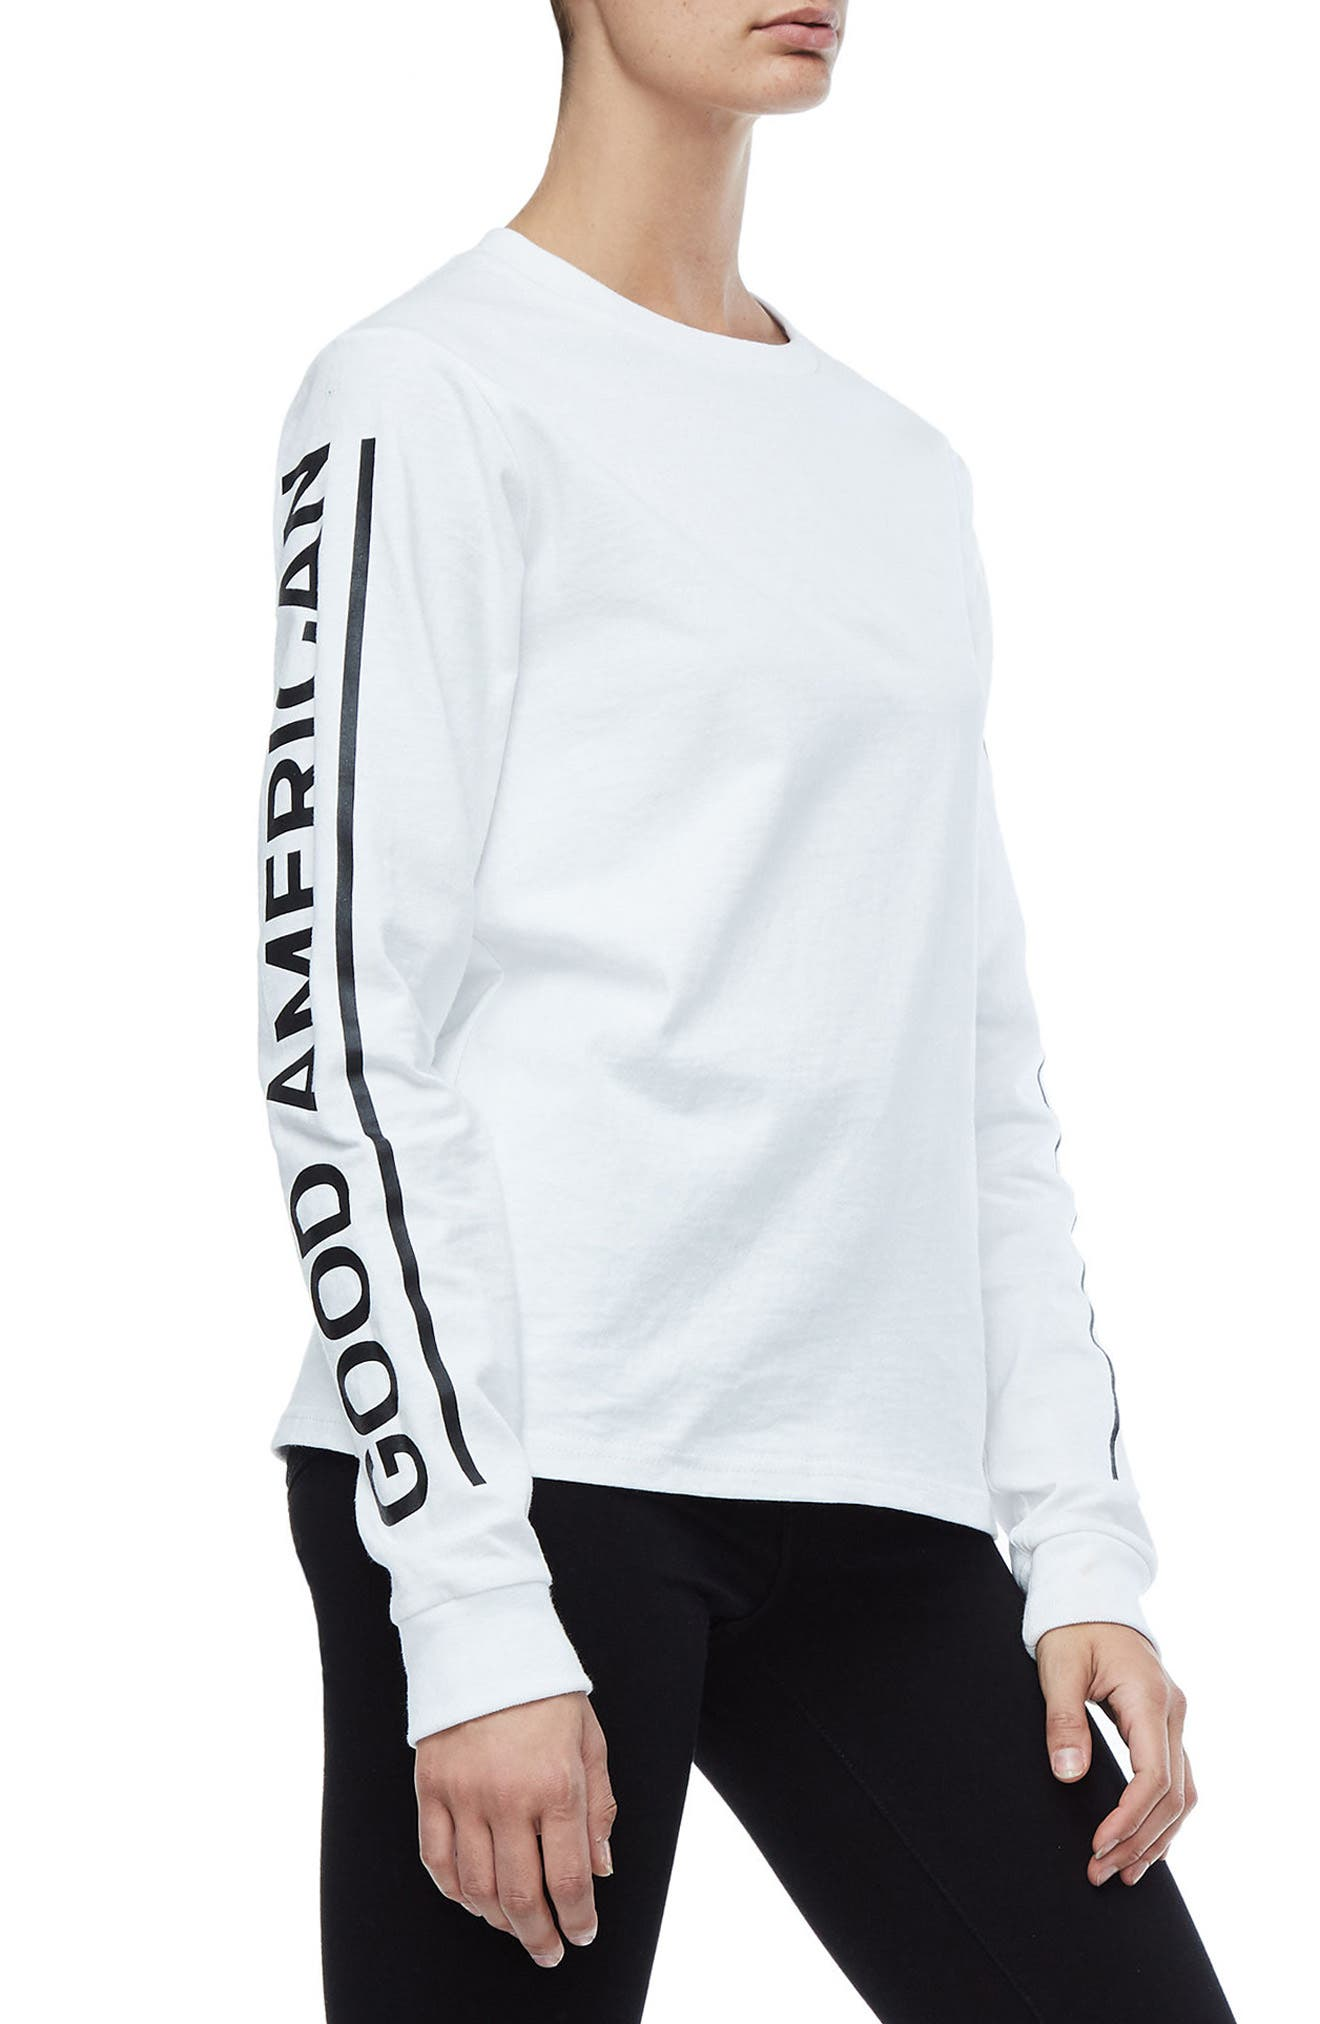 Goodies Long Sleeve Graphic Tee,                             Alternate thumbnail 4, color,                             White001